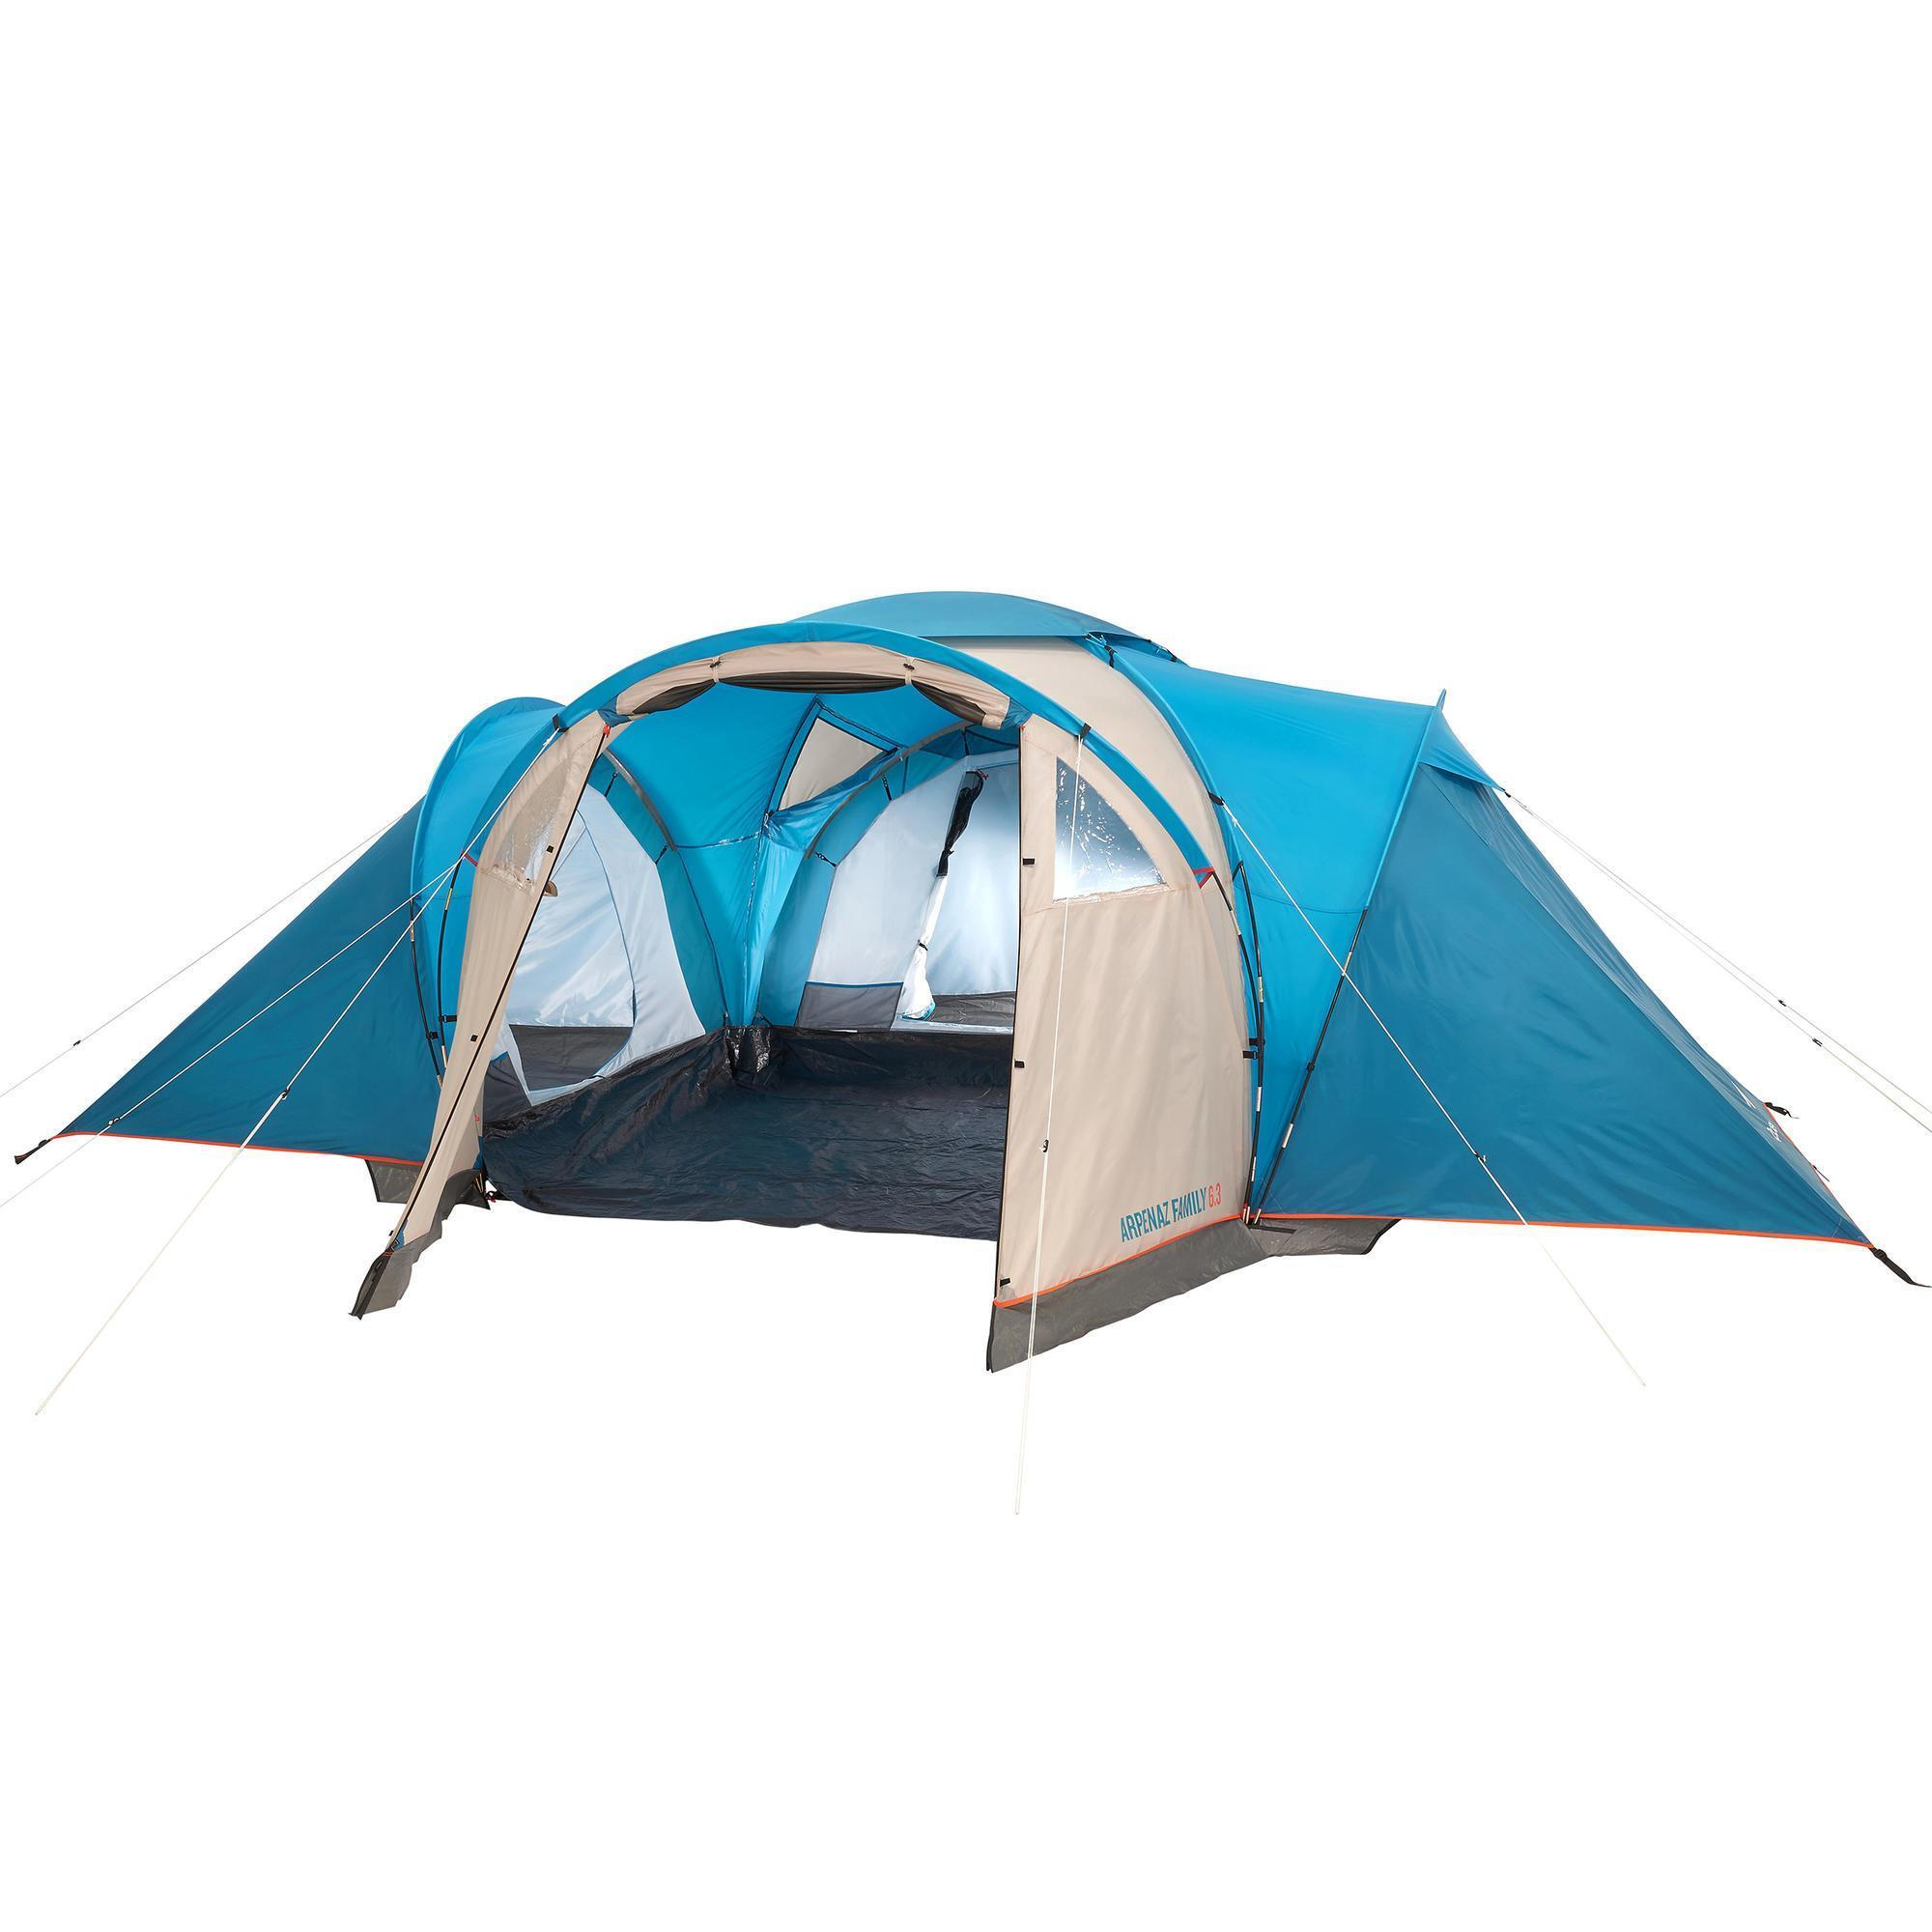 Arpenaz 6 3 Family Camping Tent 6 People Quechua